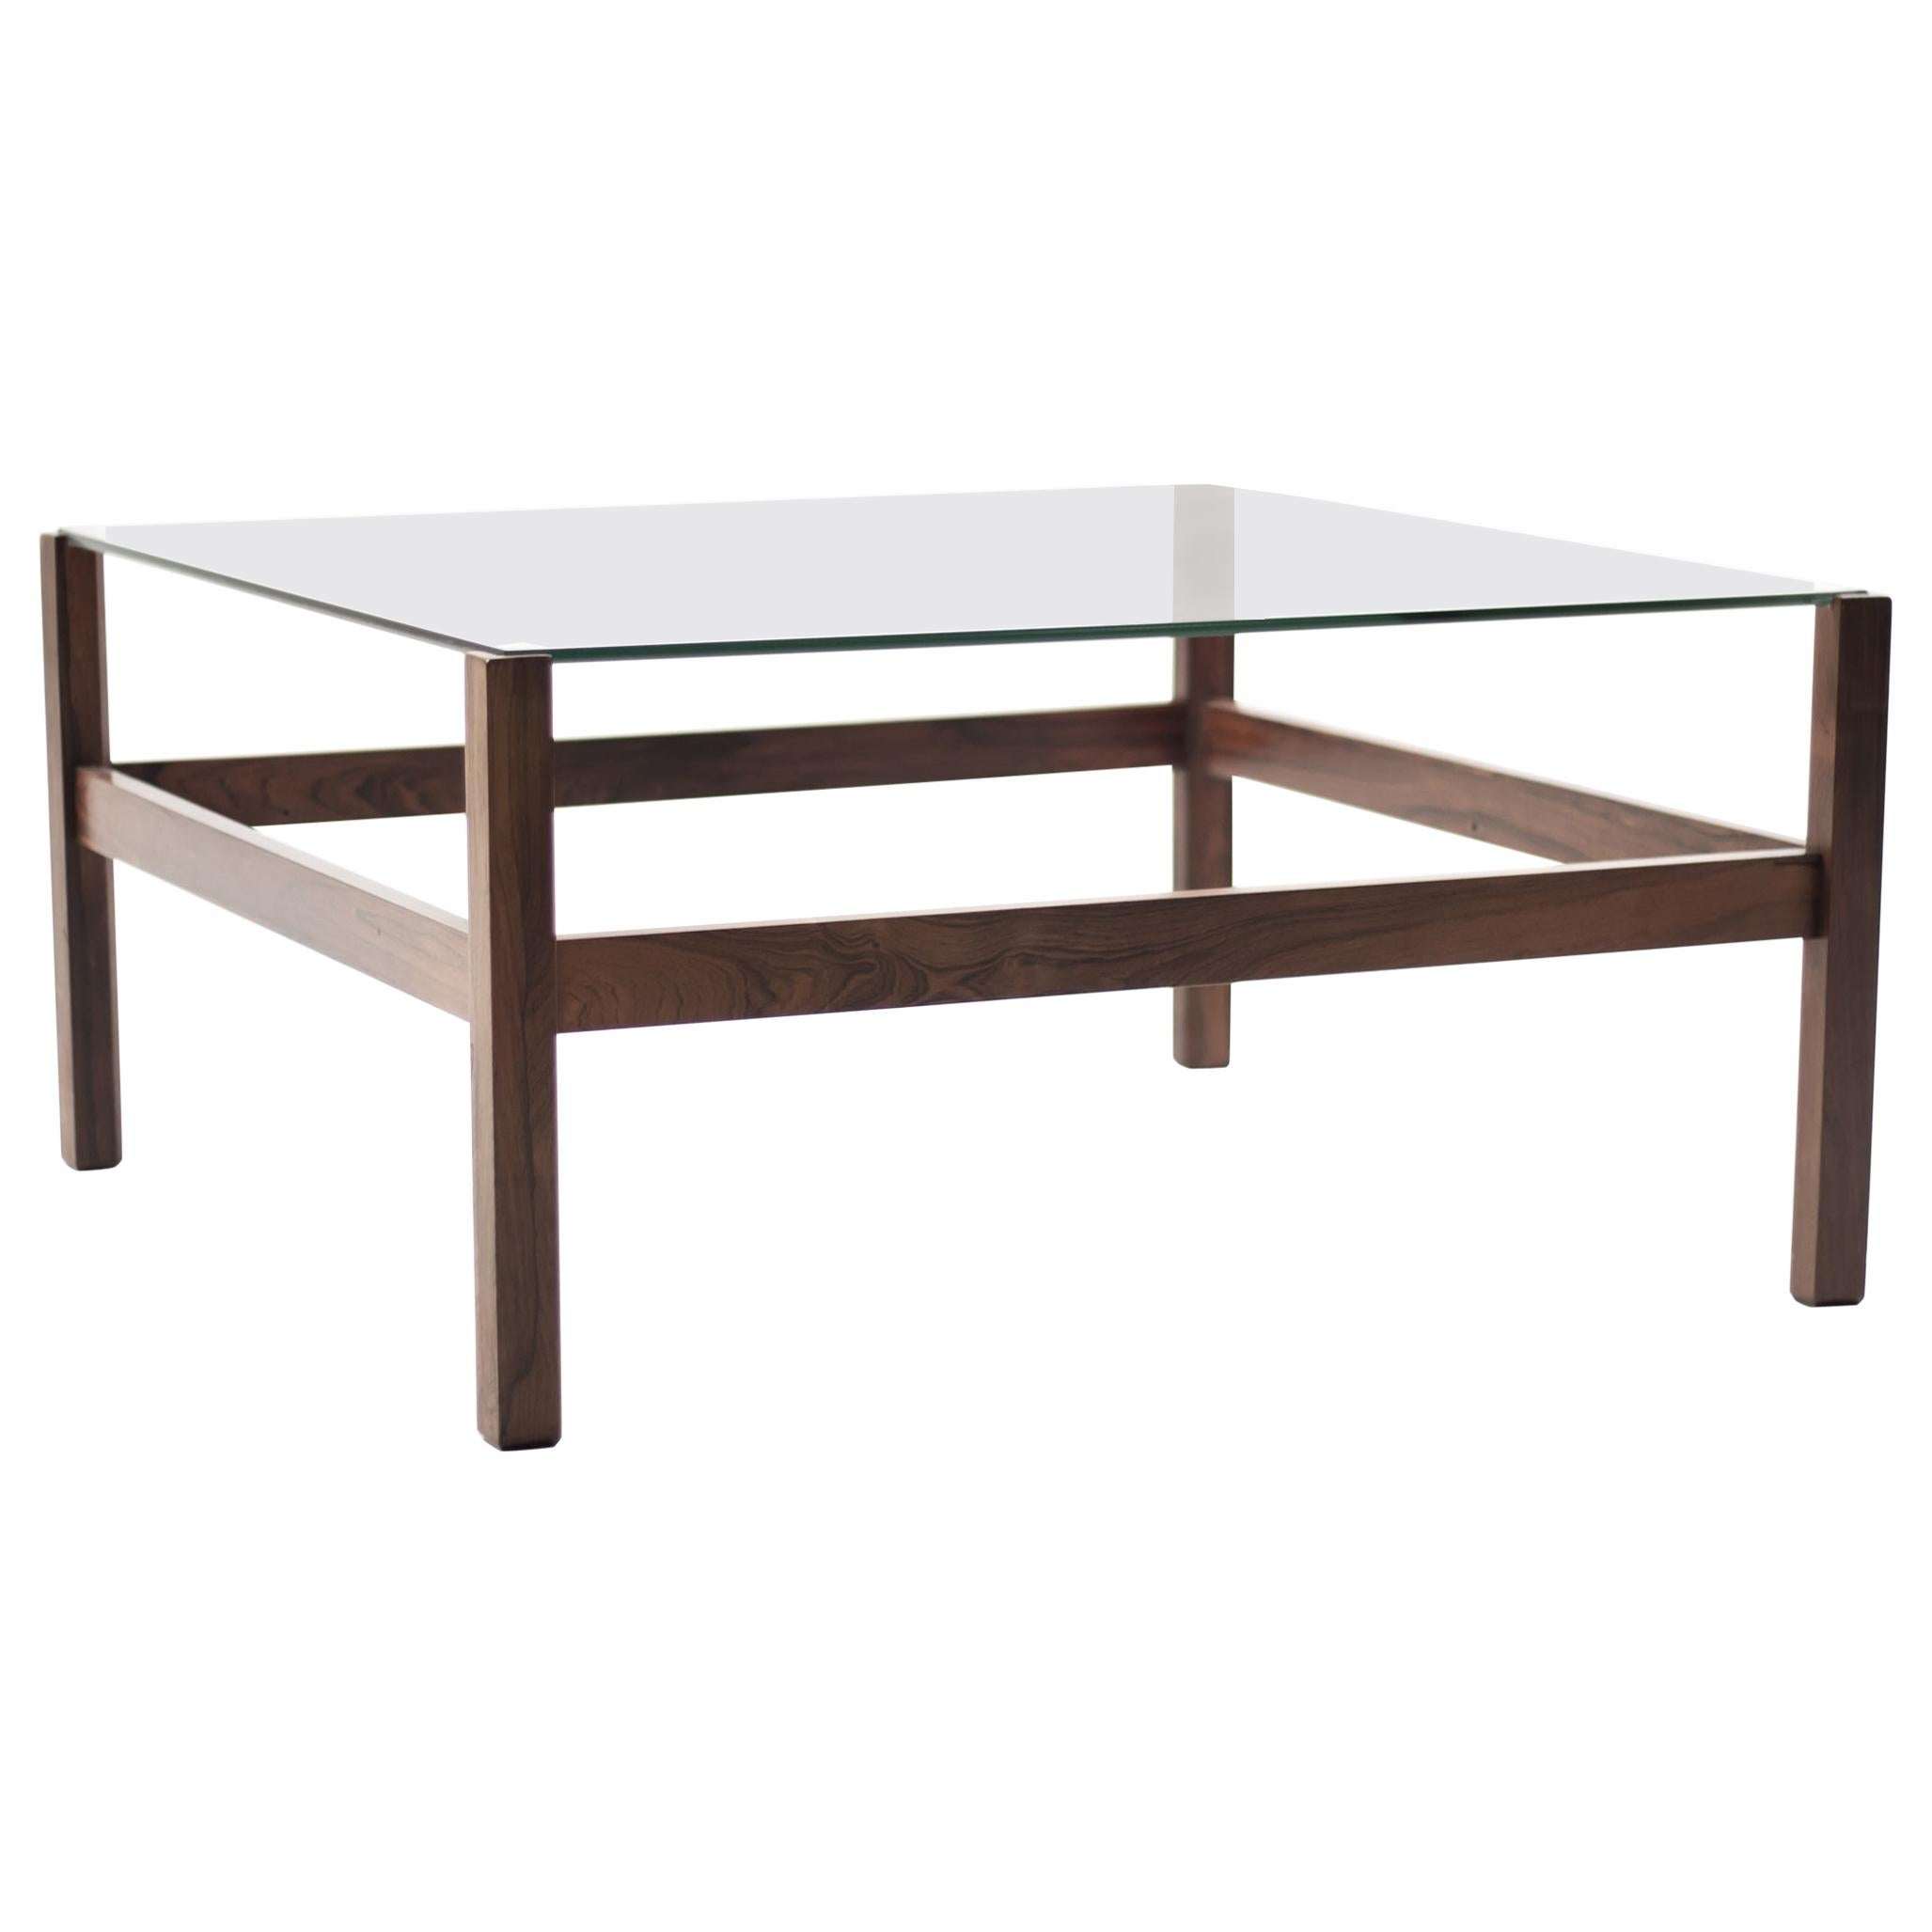 Architectural Brazilian Rosewood Coffee Table My Modern